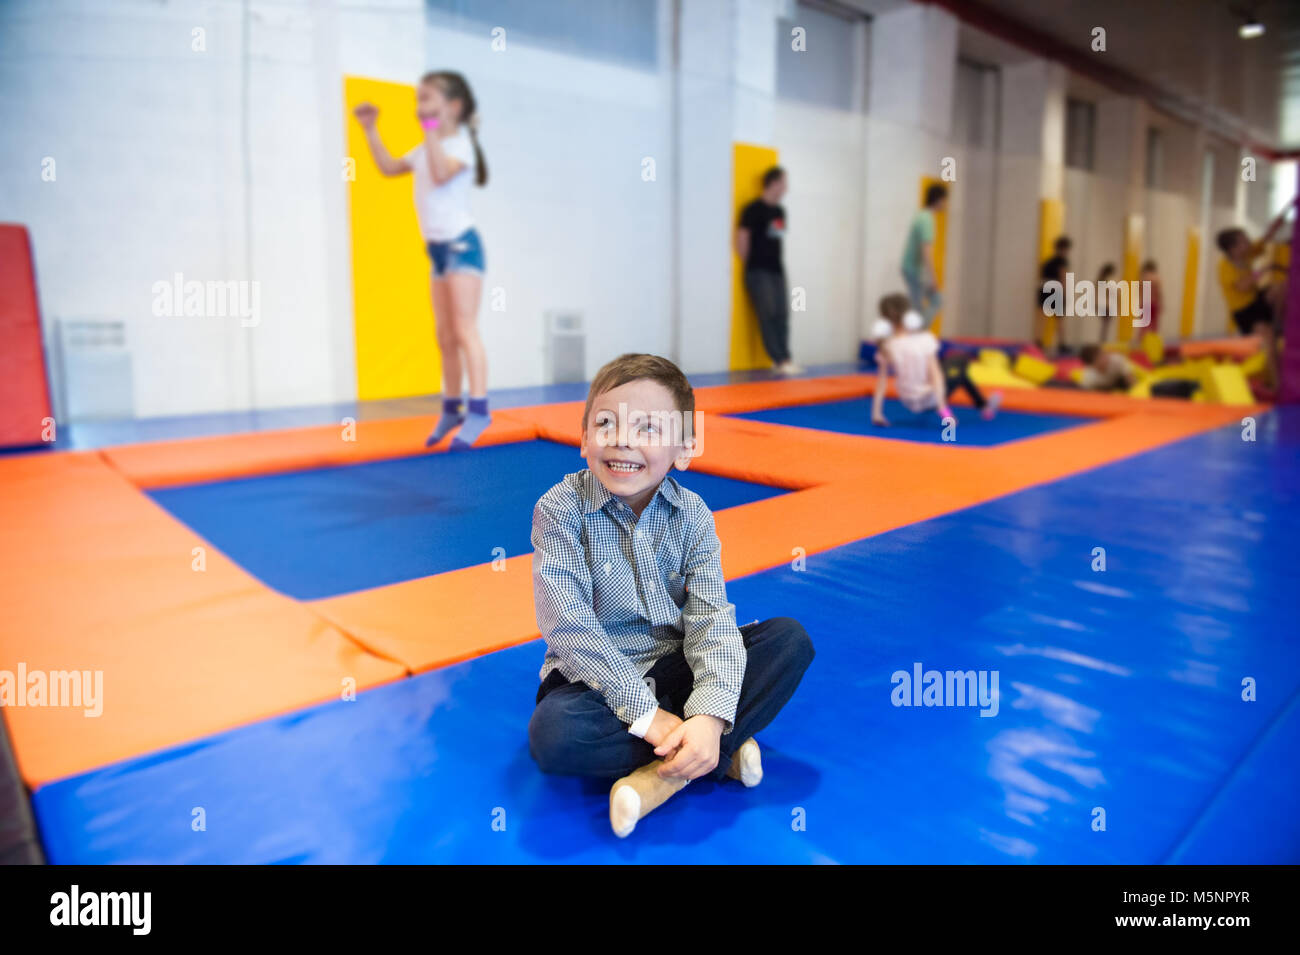 trampoline indoors stock photos trampoline indoors stock images alamy. Black Bedroom Furniture Sets. Home Design Ideas